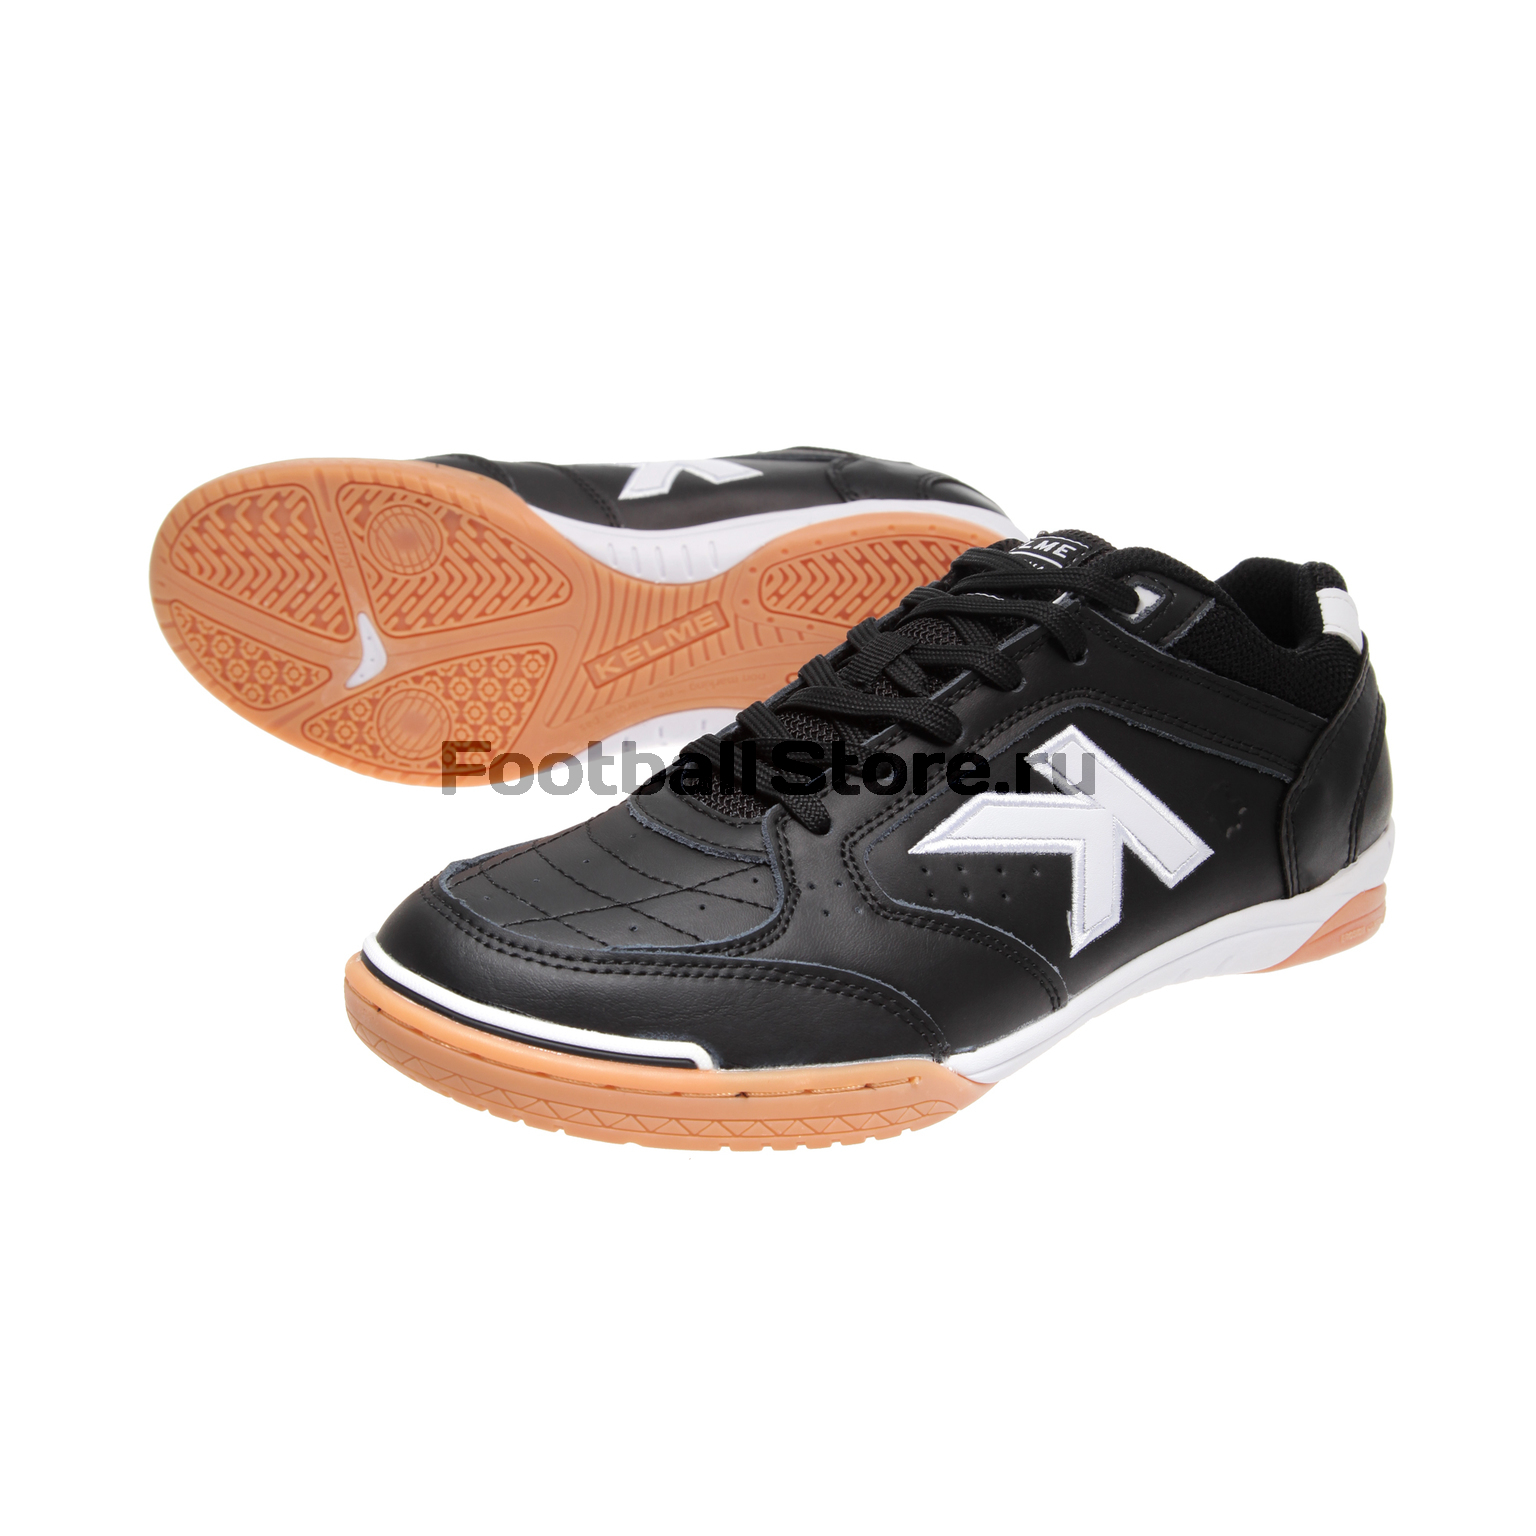 Обувь для зала Kelme Precision One 55813-138 обувь для зала kelme обувь для зала kelme subito 5 0 55803 026